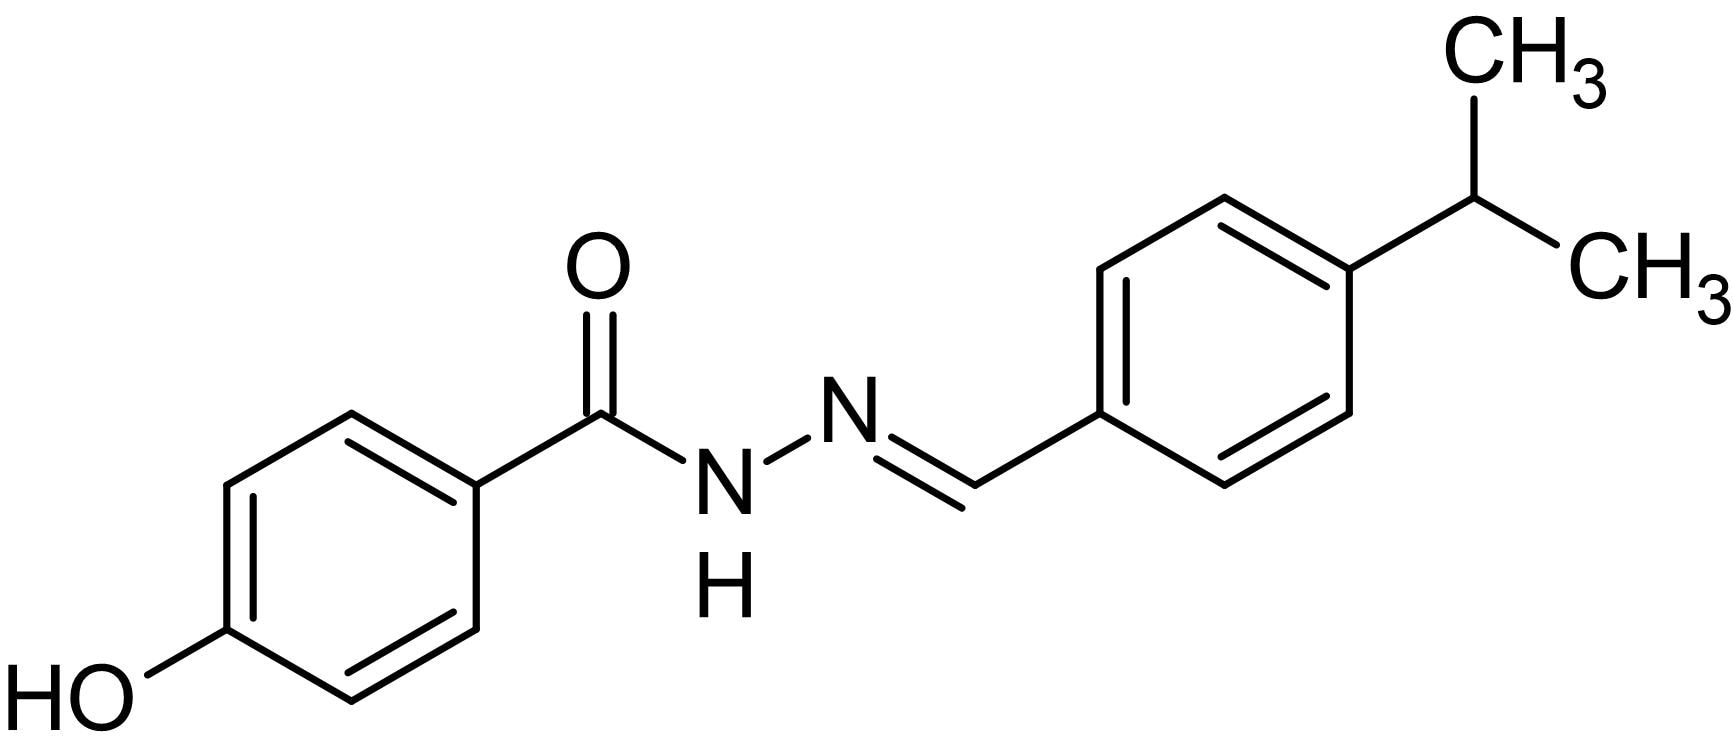 Chemical Structure - GSK 4716, ERRbetagamma agonist (ab120826)